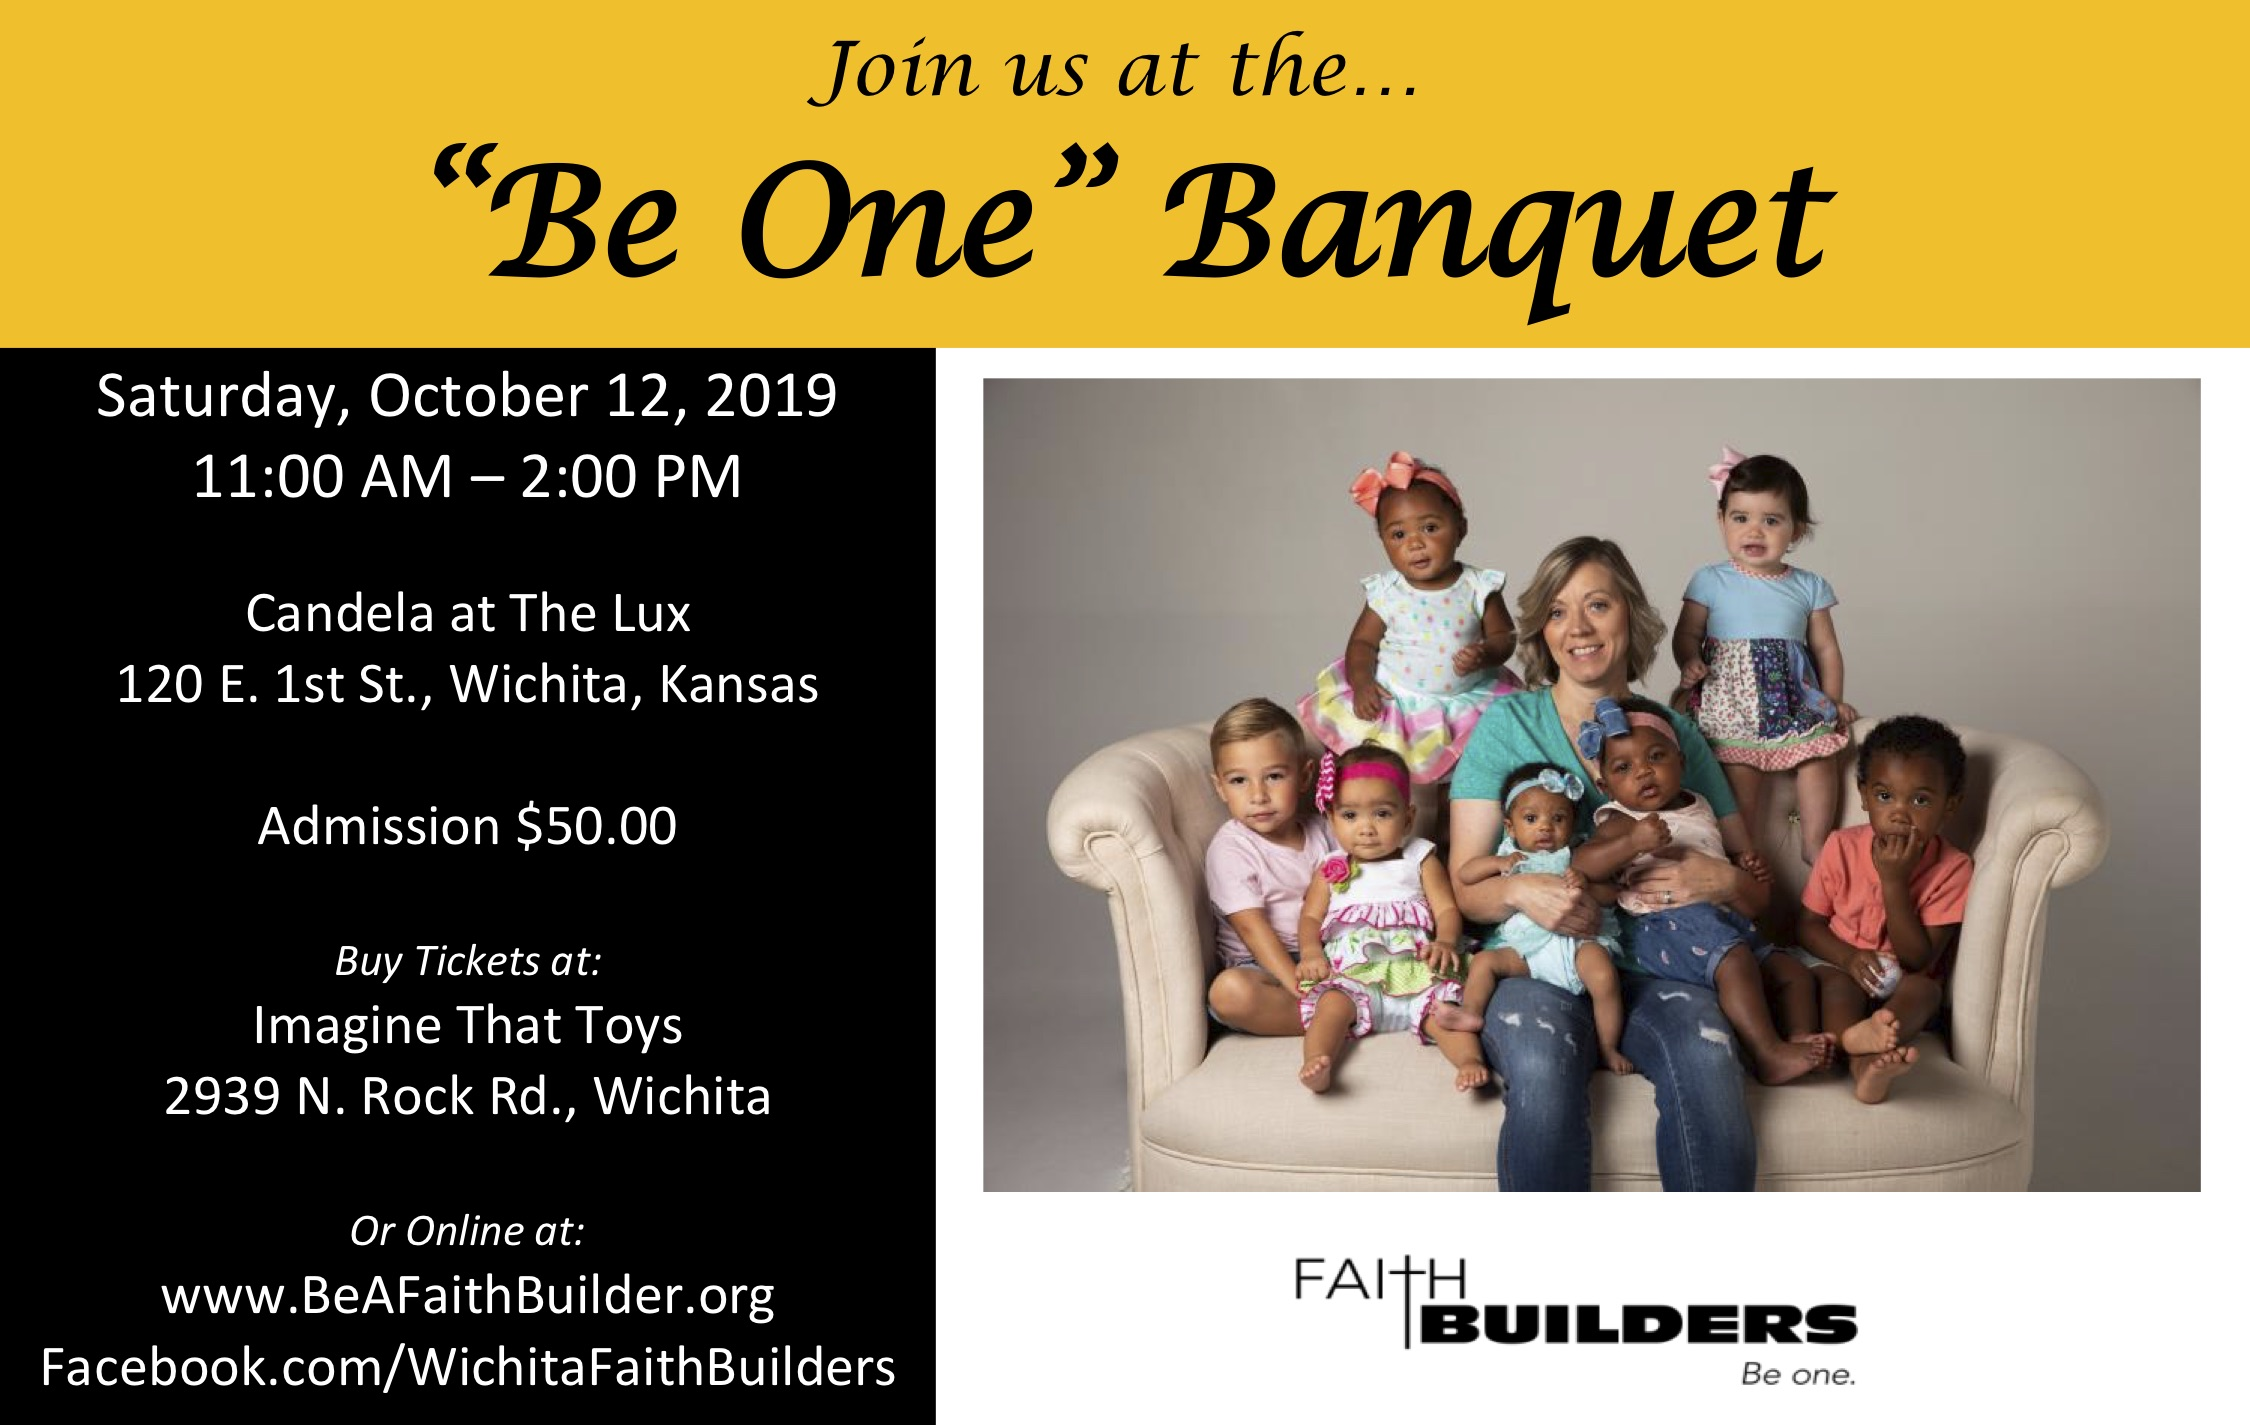 Be One Banquet Flyer